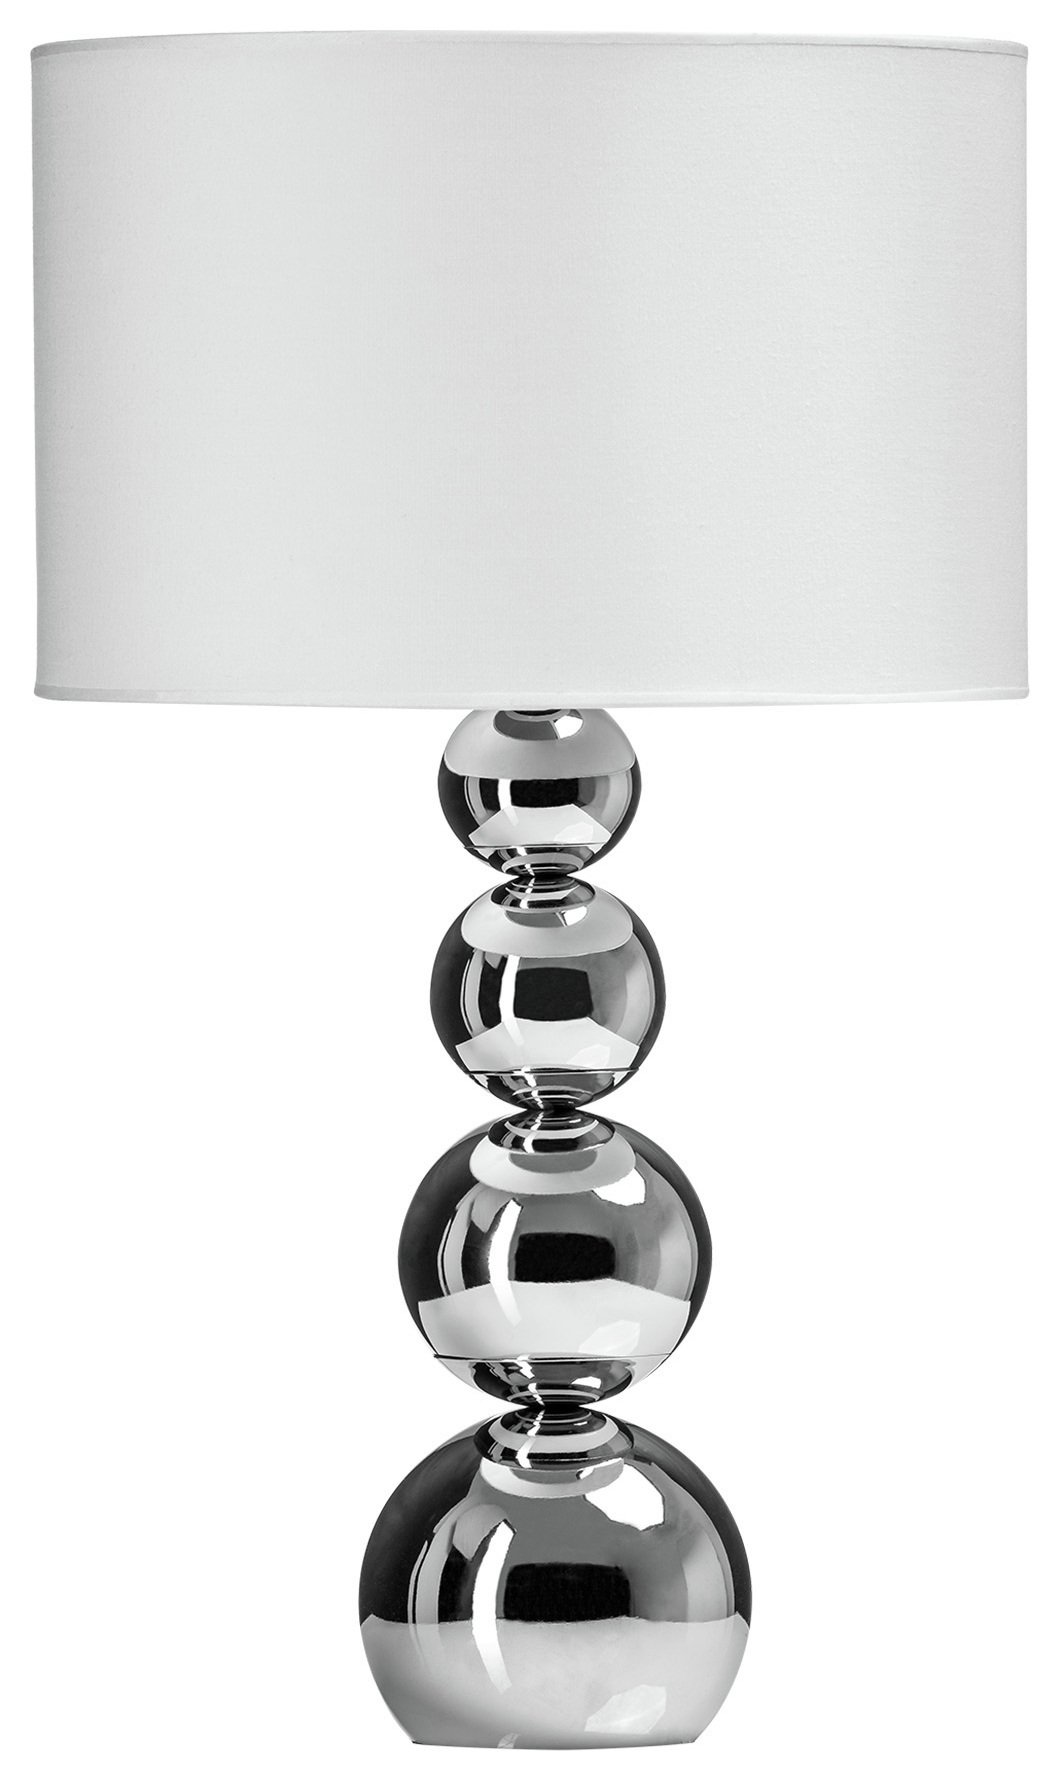 Cameo Touch Table Lamp - Chrome & White